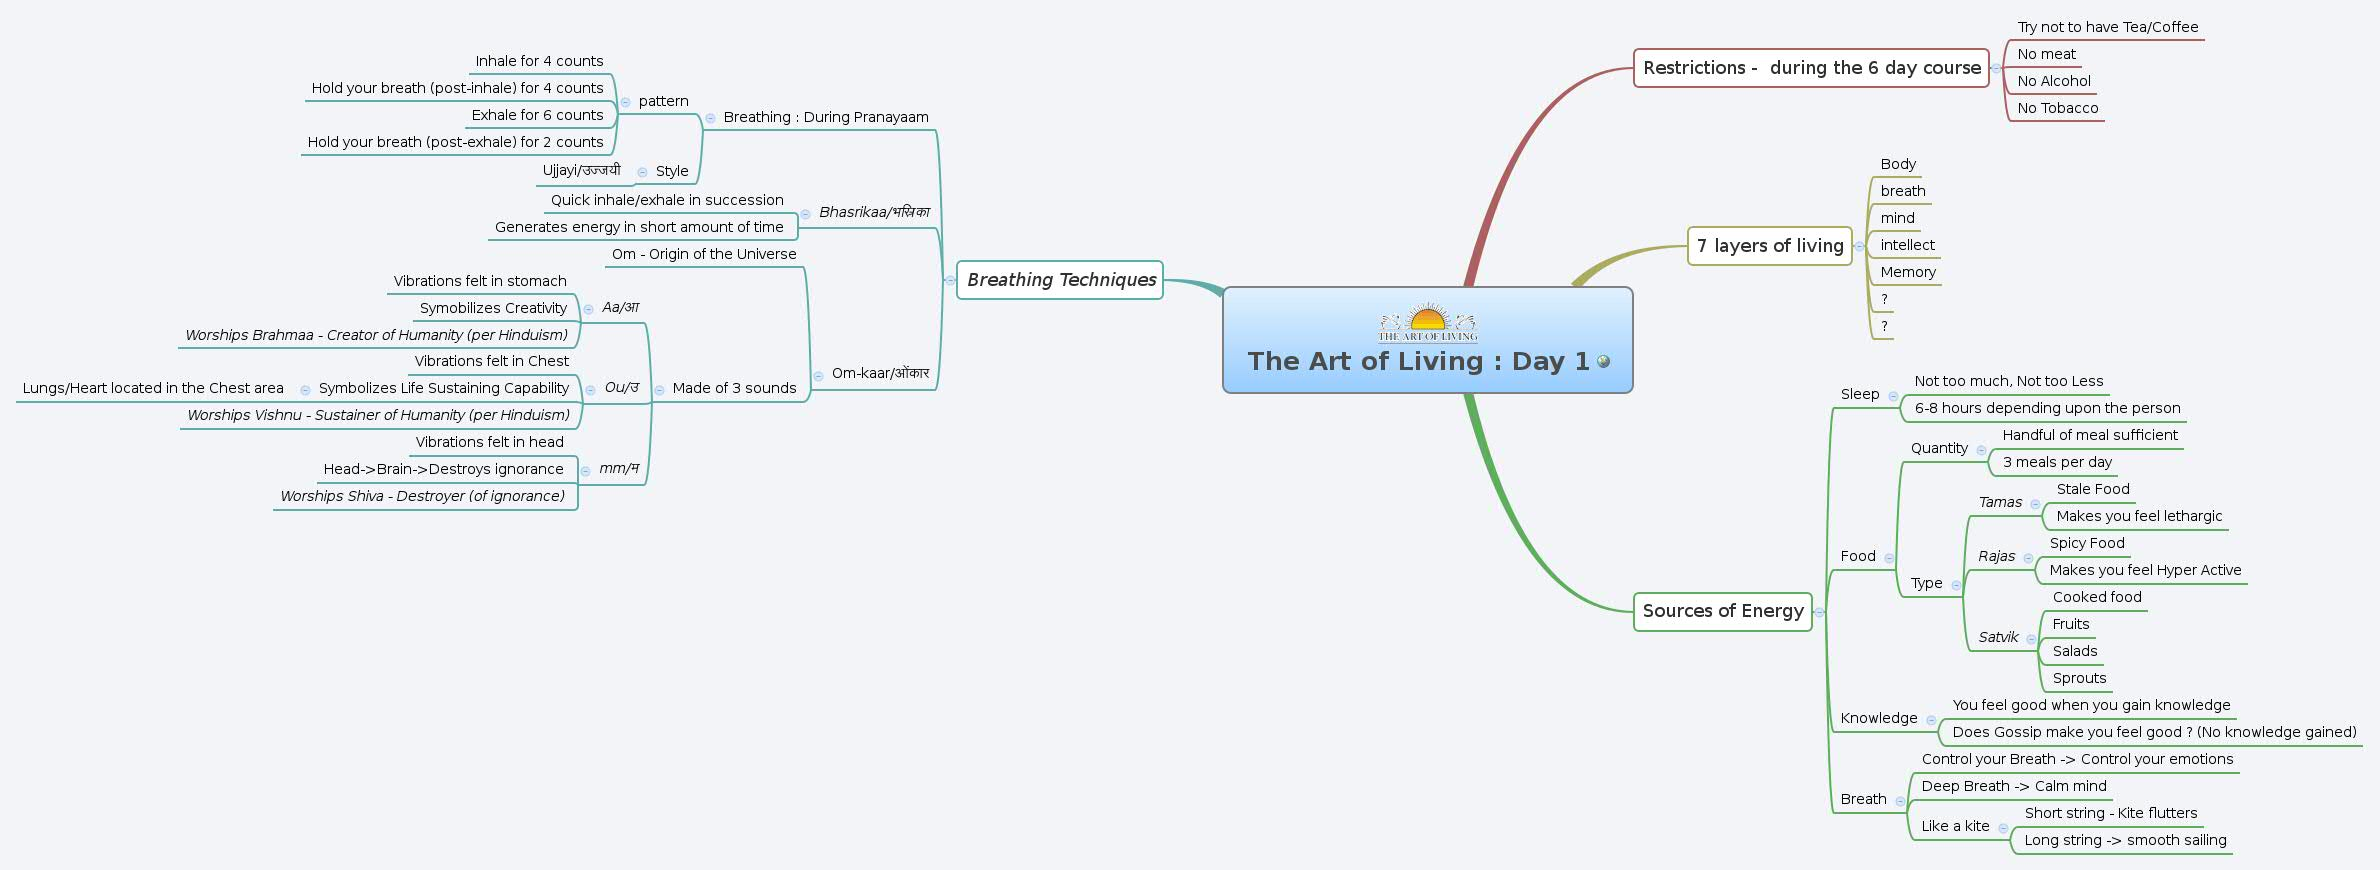 The Art of Living : Day 1 - XMind - Mind Mapping Software